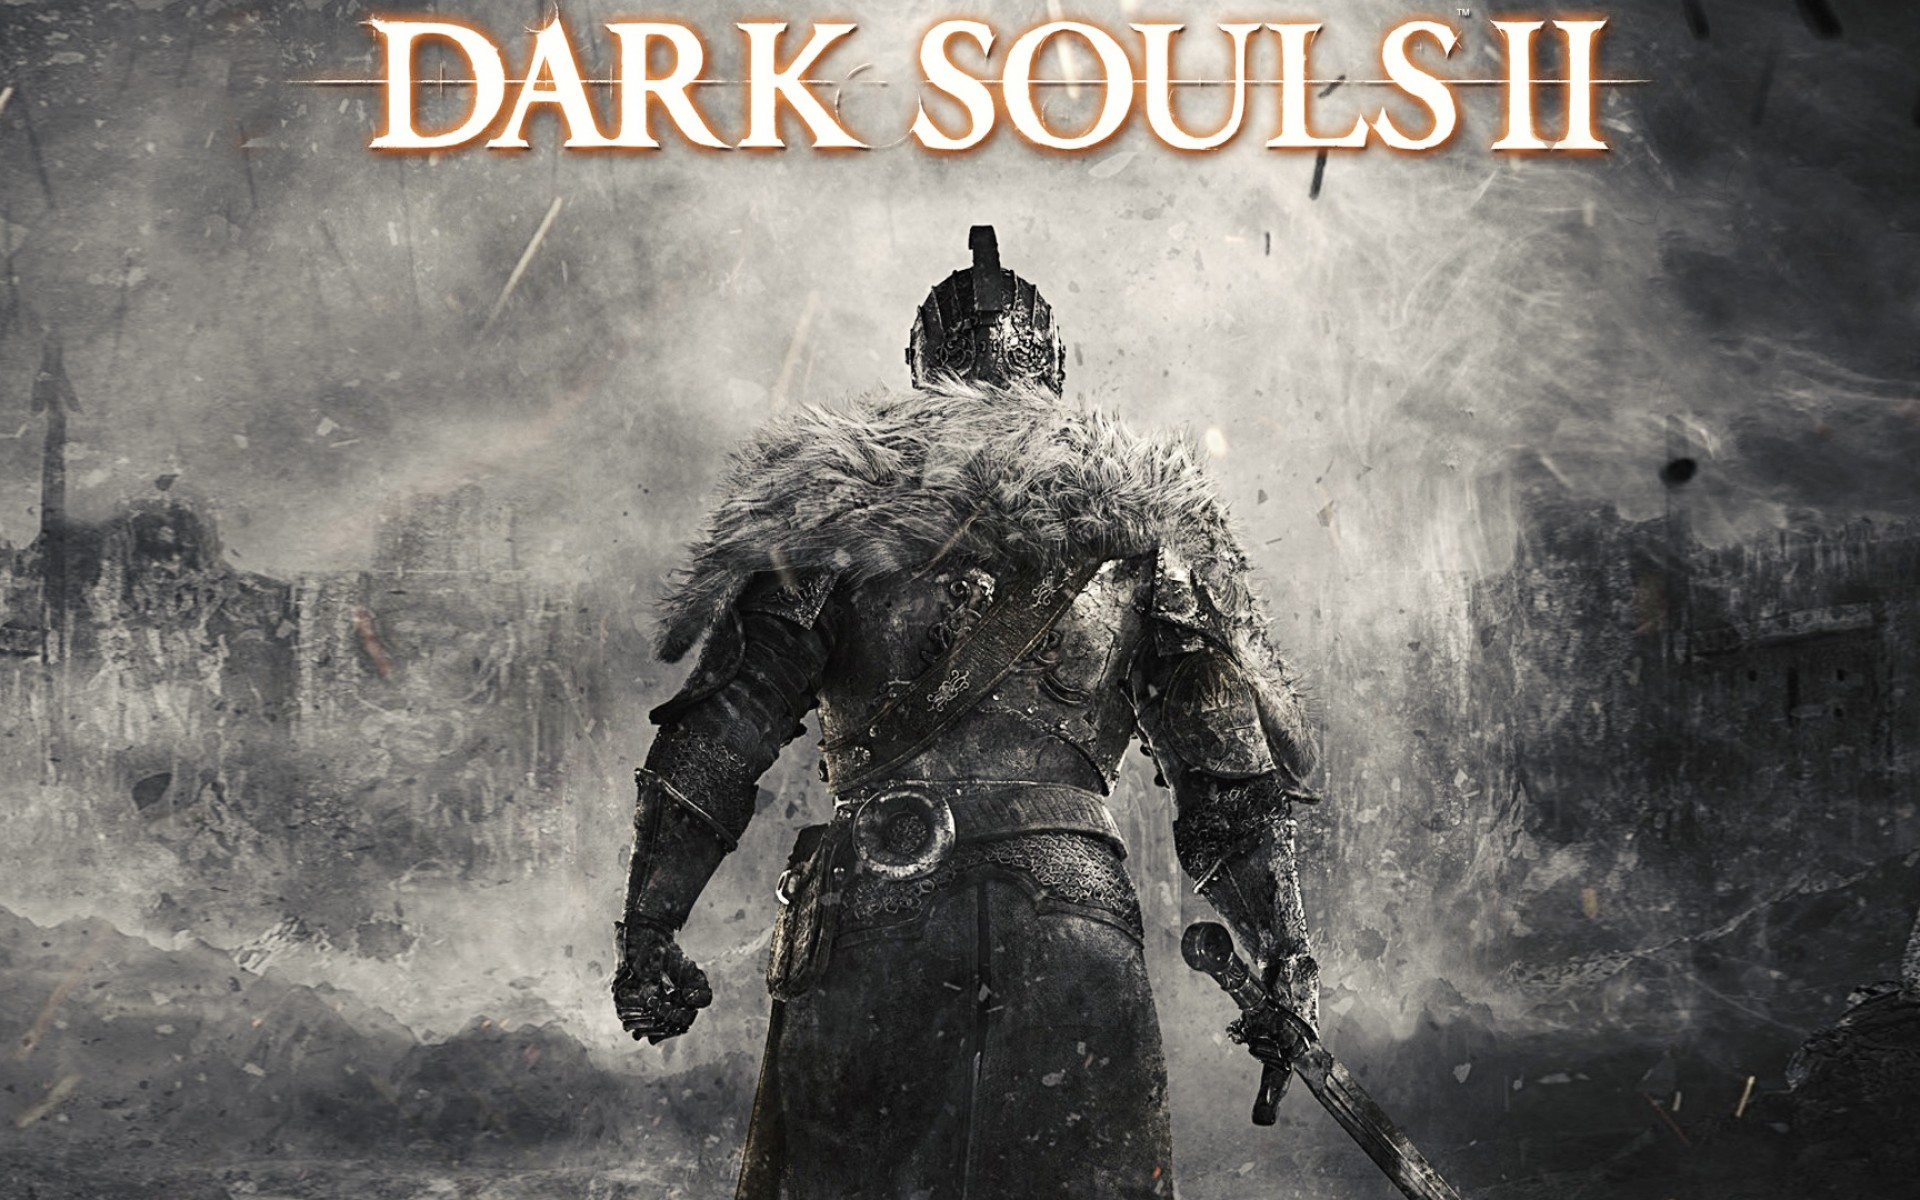 Dark Souls Ii Hd Wallpaper Background Image 1920x1200 Id